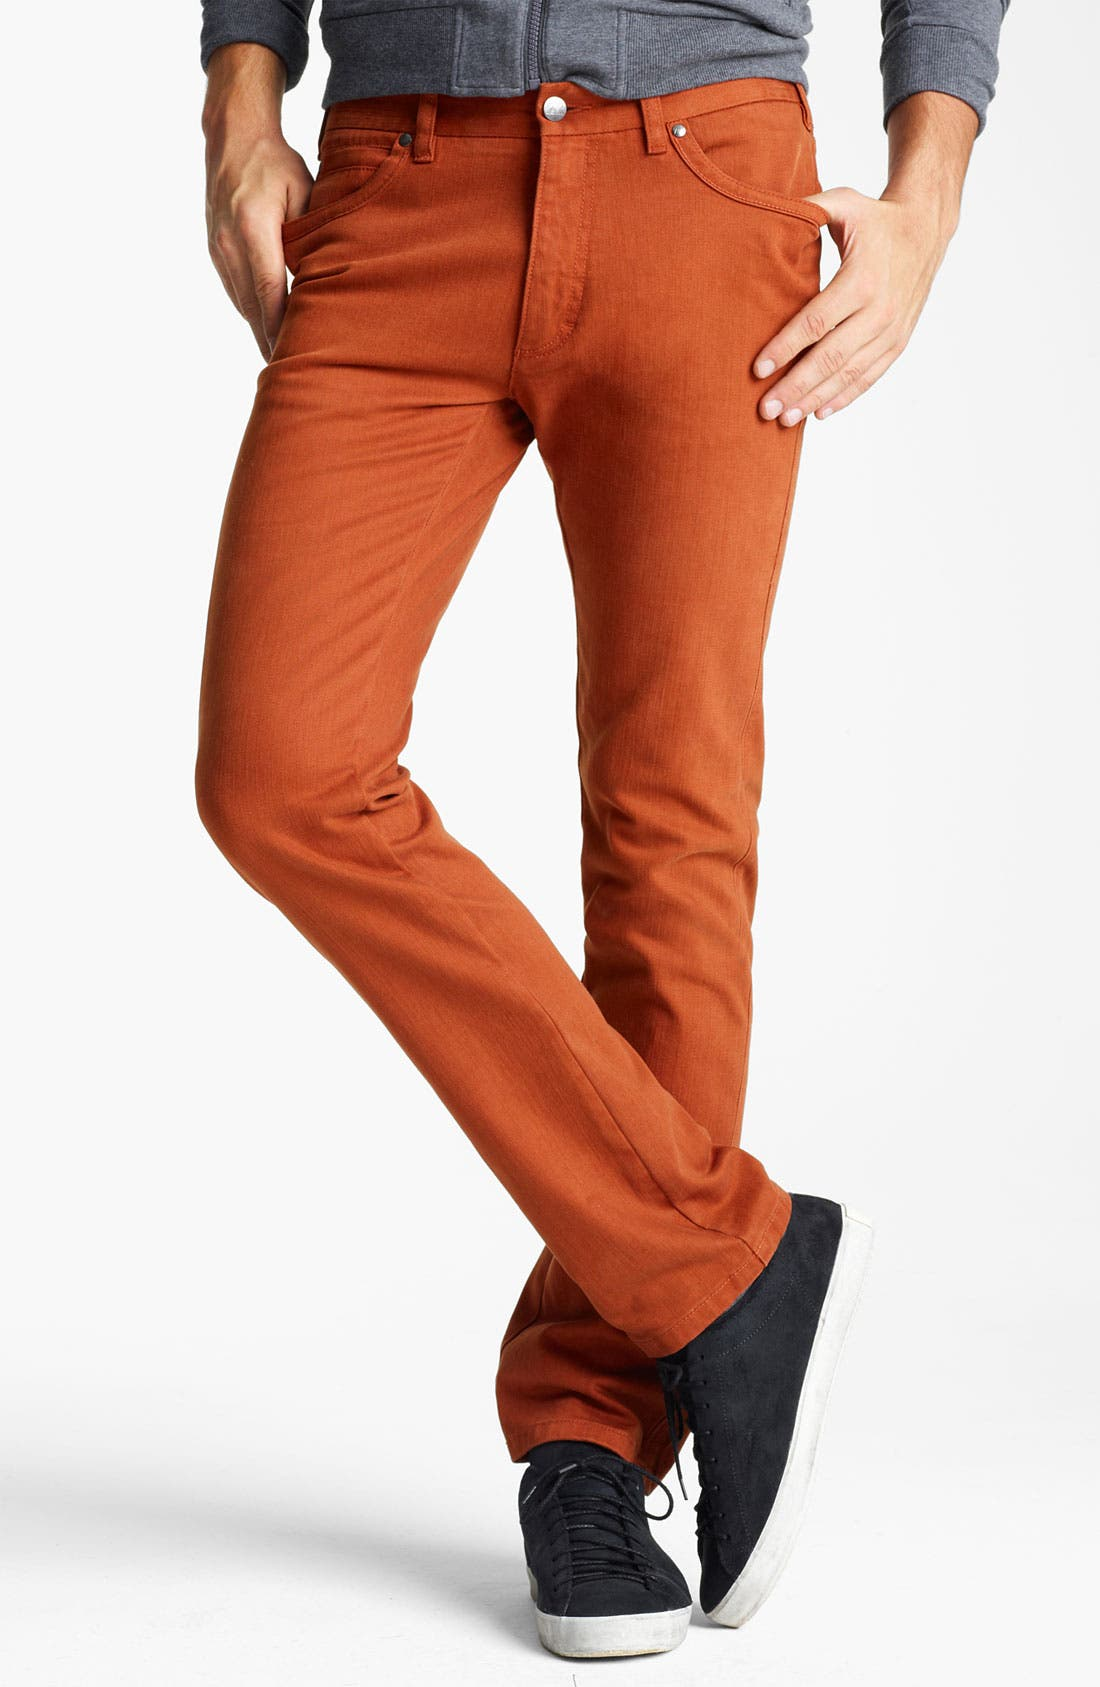 Alternate Image 1 Selected - Zegna Sport Straight Leg Jeans